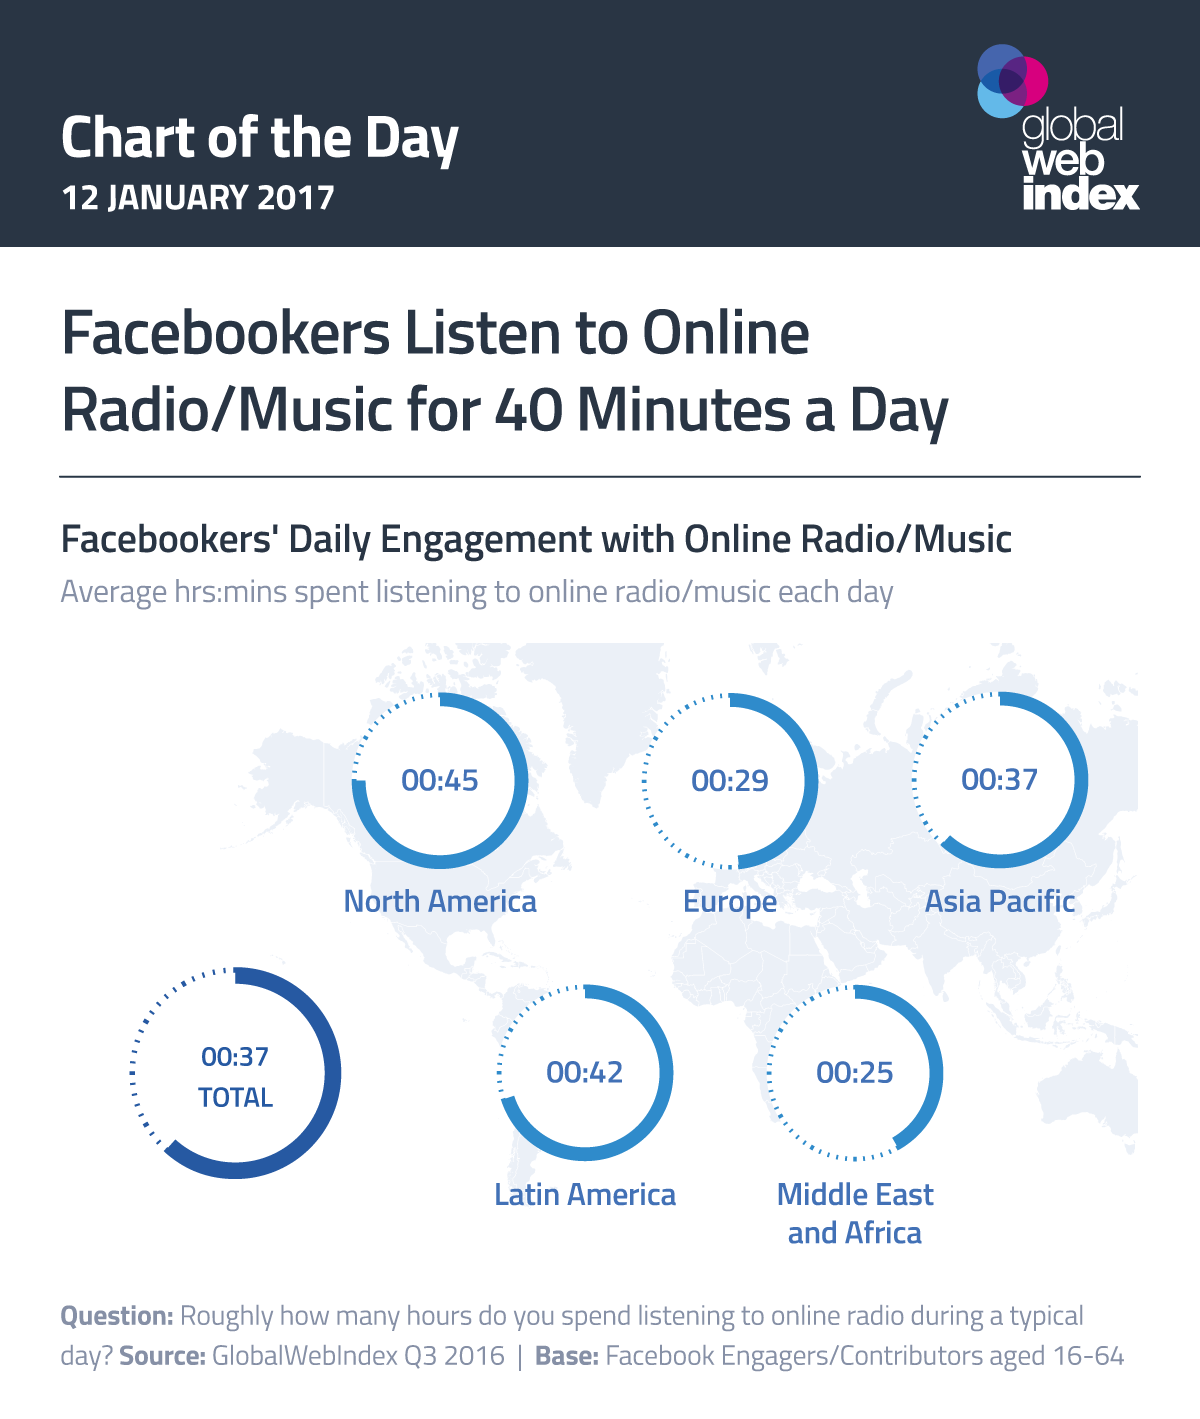 Facebookers Listen to Online Radio/Music for 40 Minutes a Day